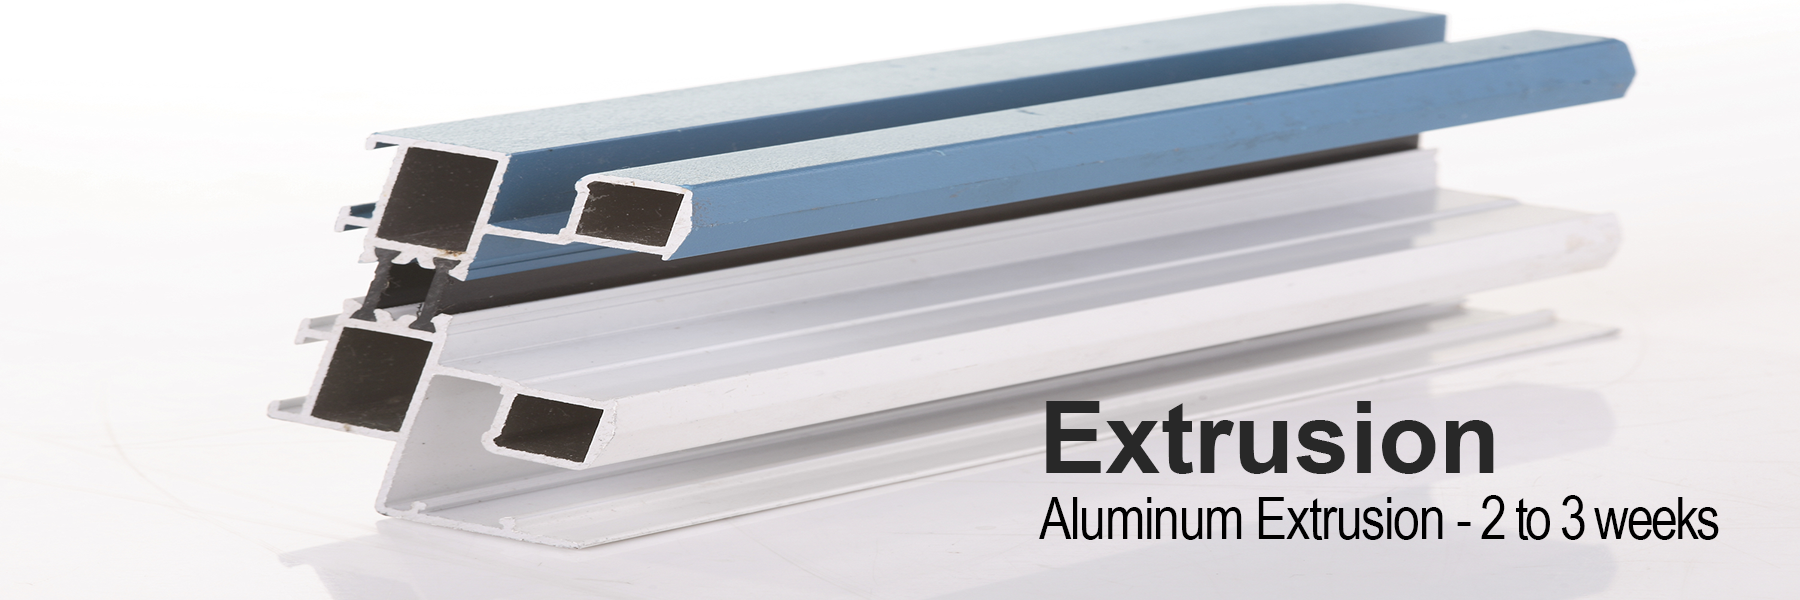 Rapid Aluminum Extrusion